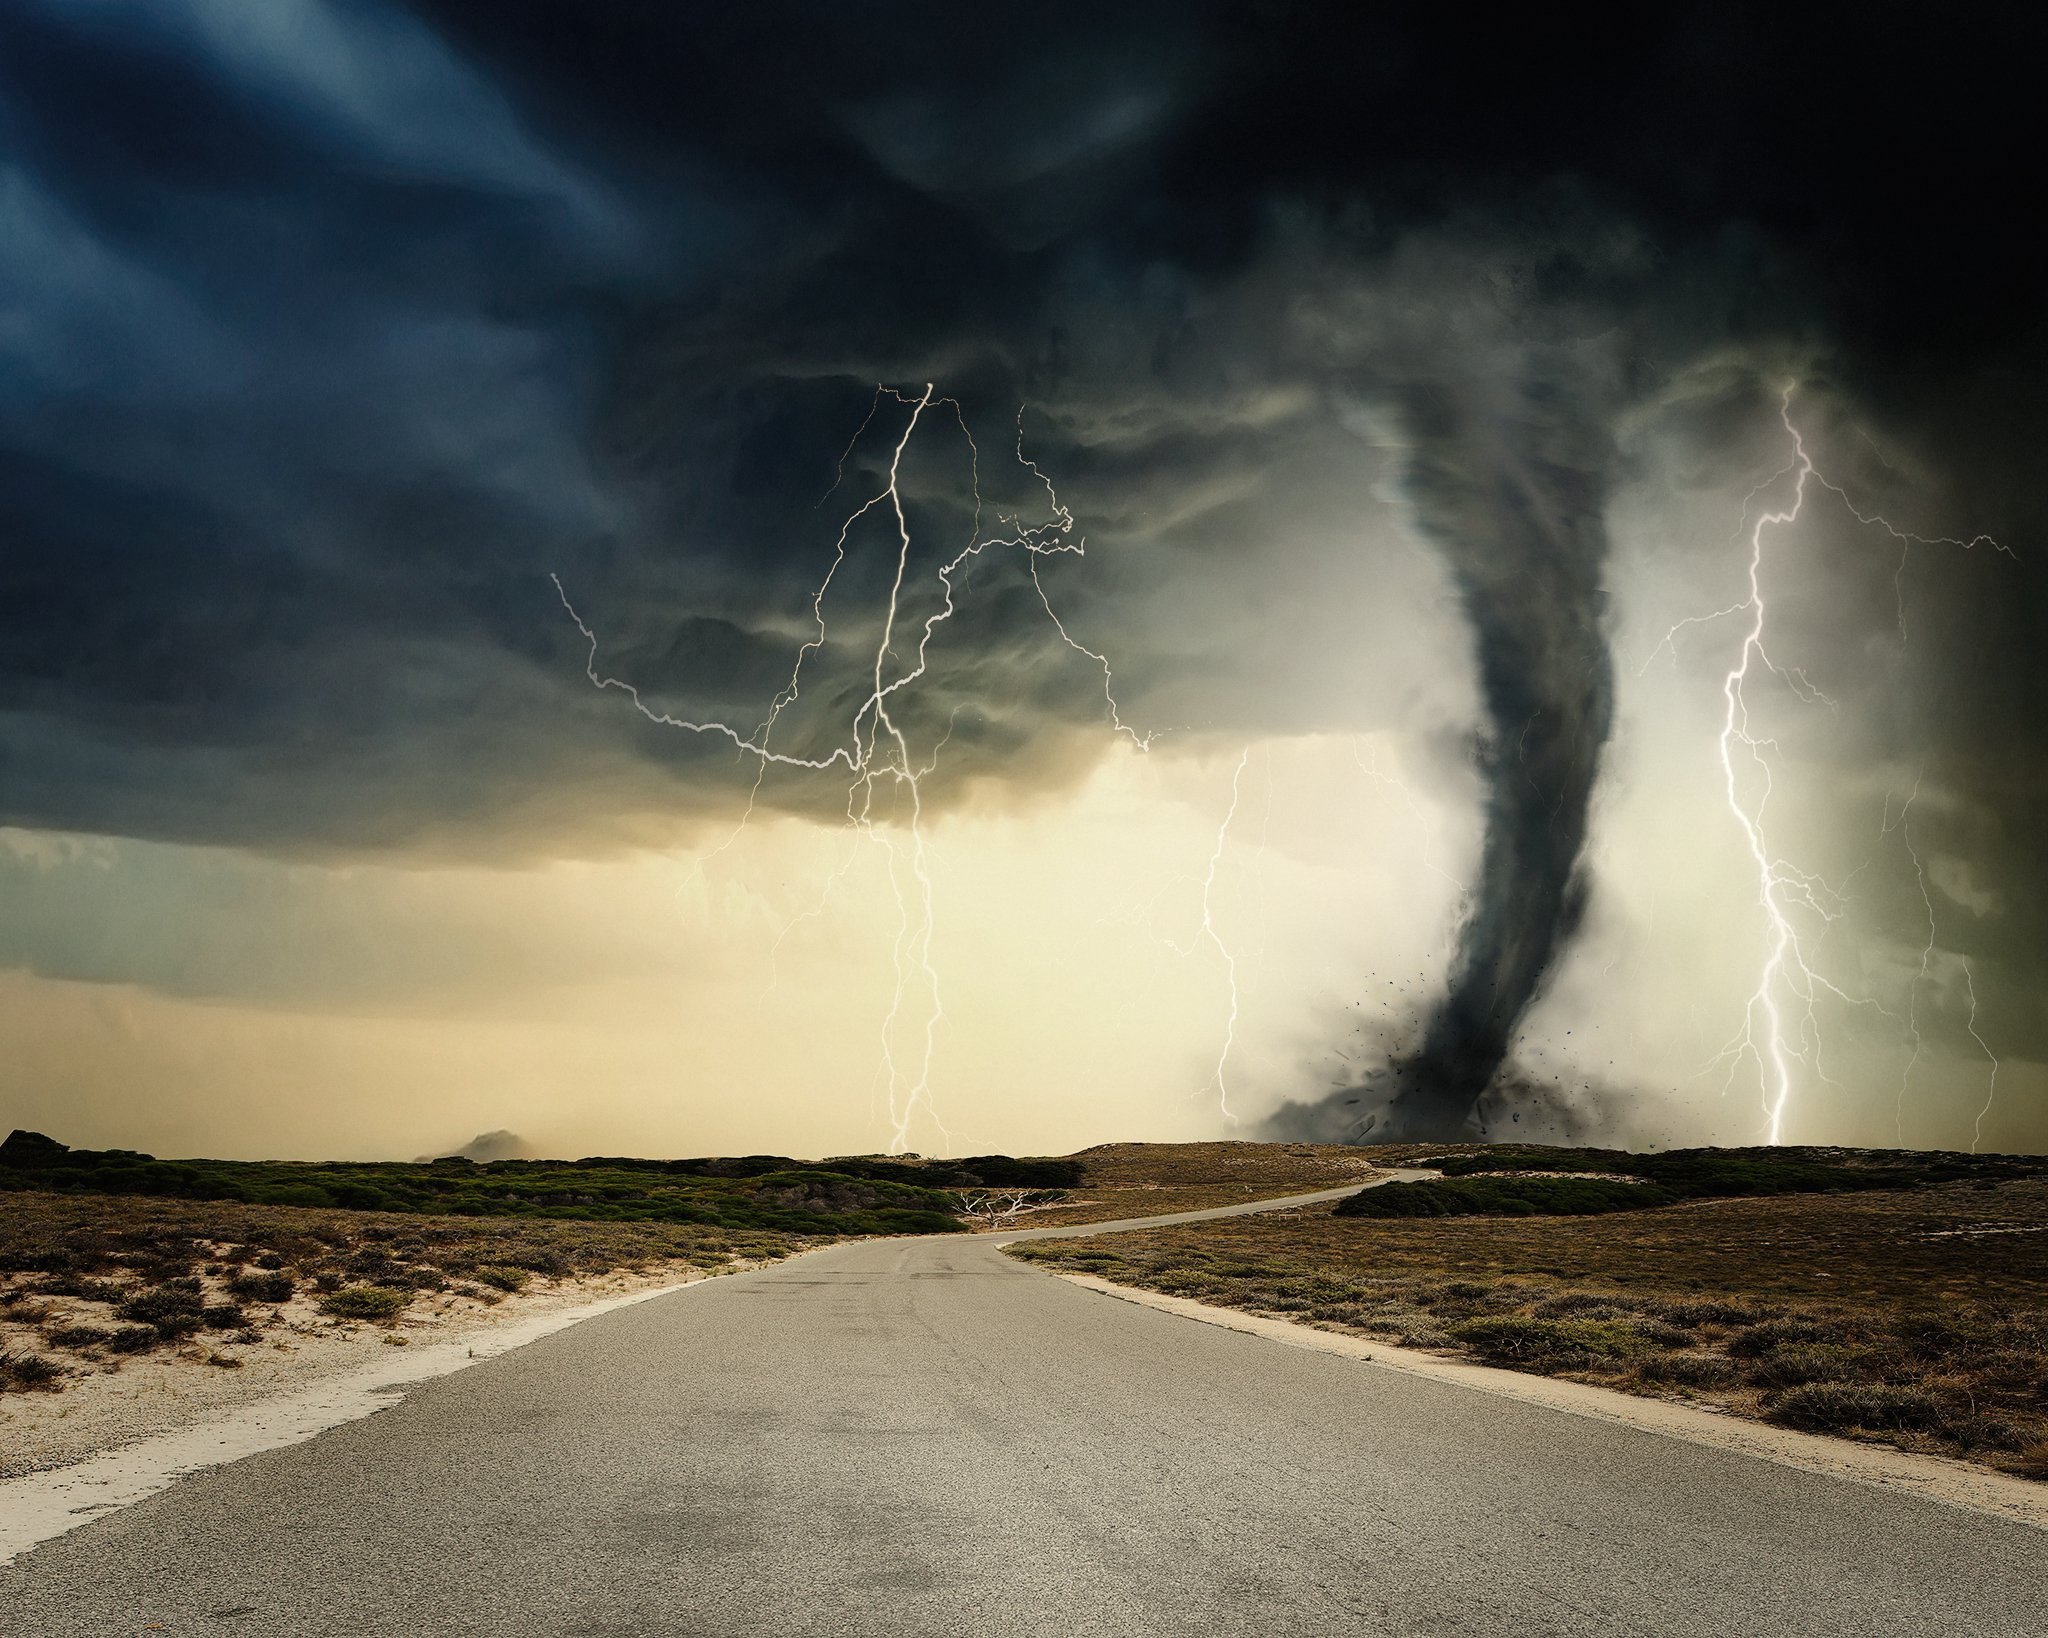 image of tornado with lightning and dust storm overlays added in photoshop by alana lee photography